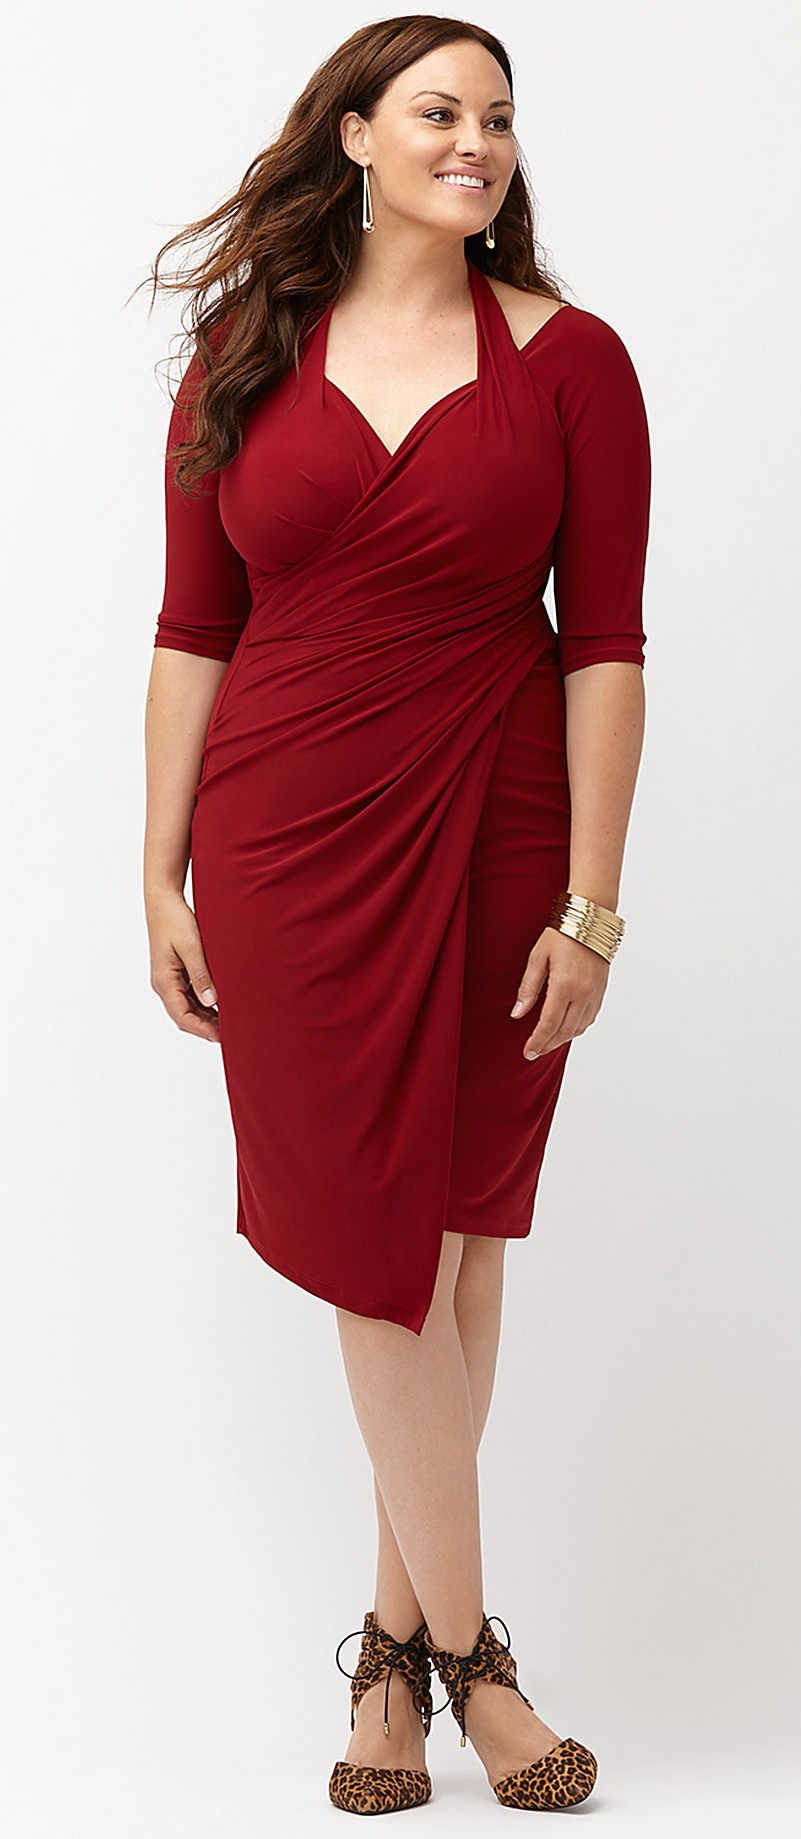 Plus Size Red Dresses   Plus Size Valentineu0027s Day Date Dresses    Alexawebb.com #